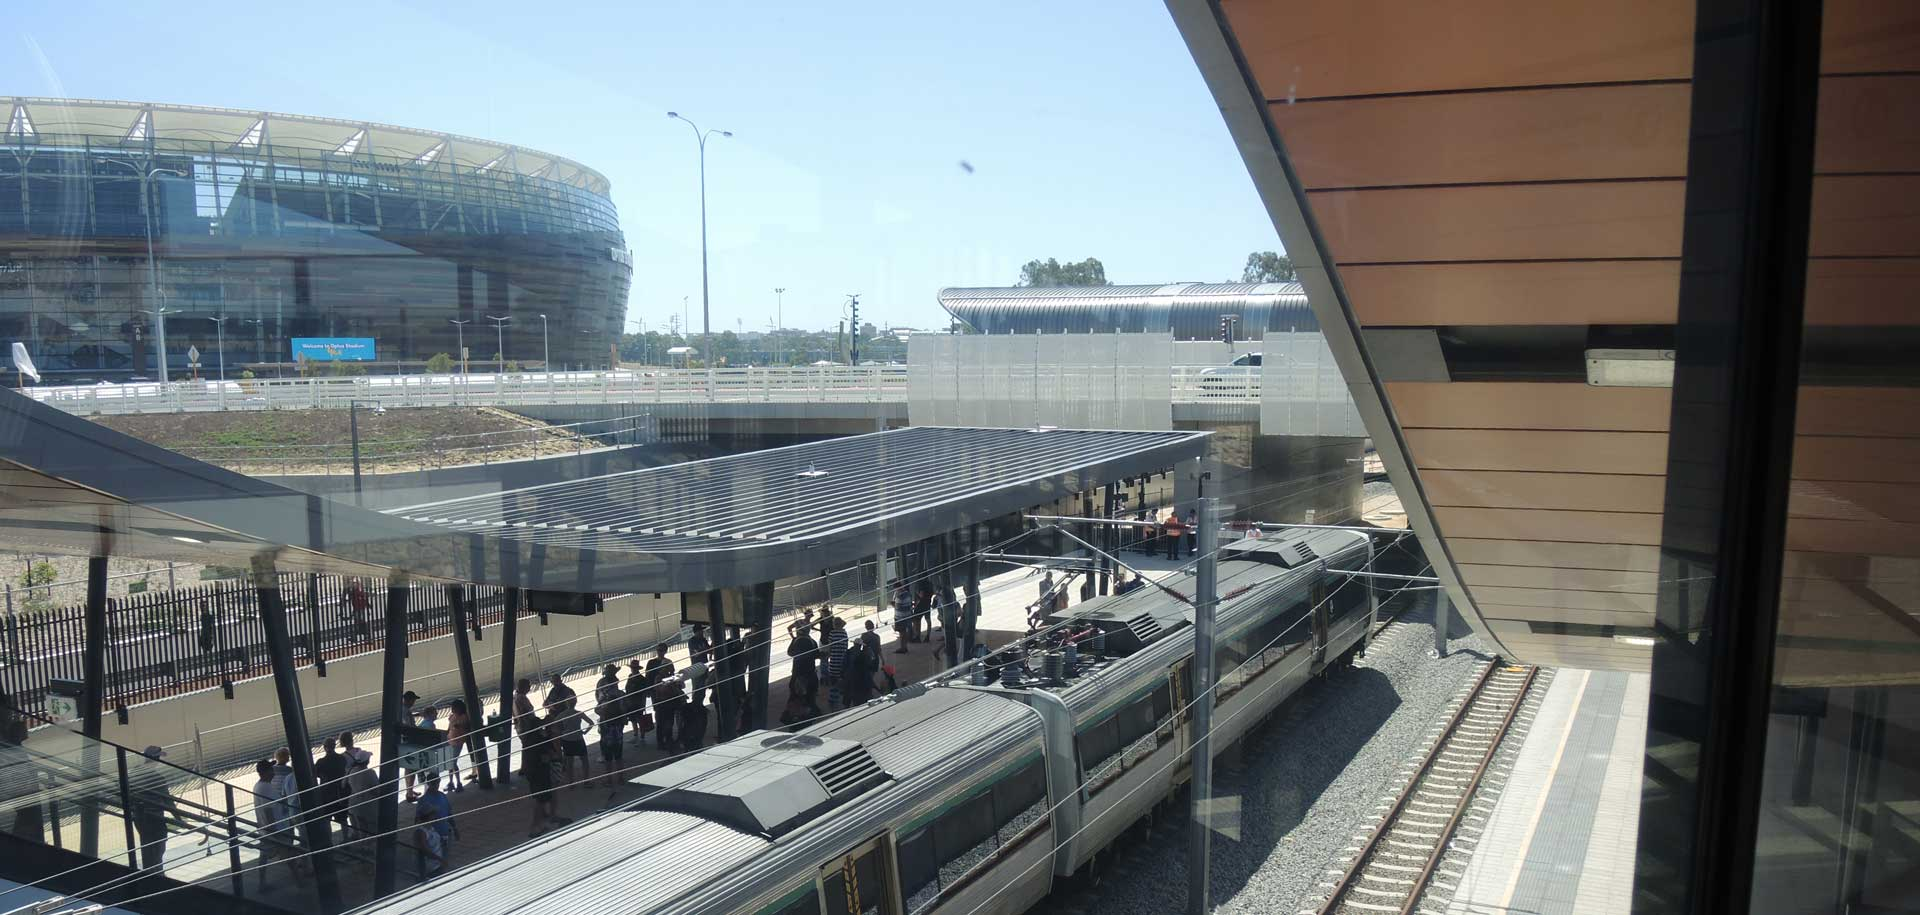 Train travelling along line with stadium in background